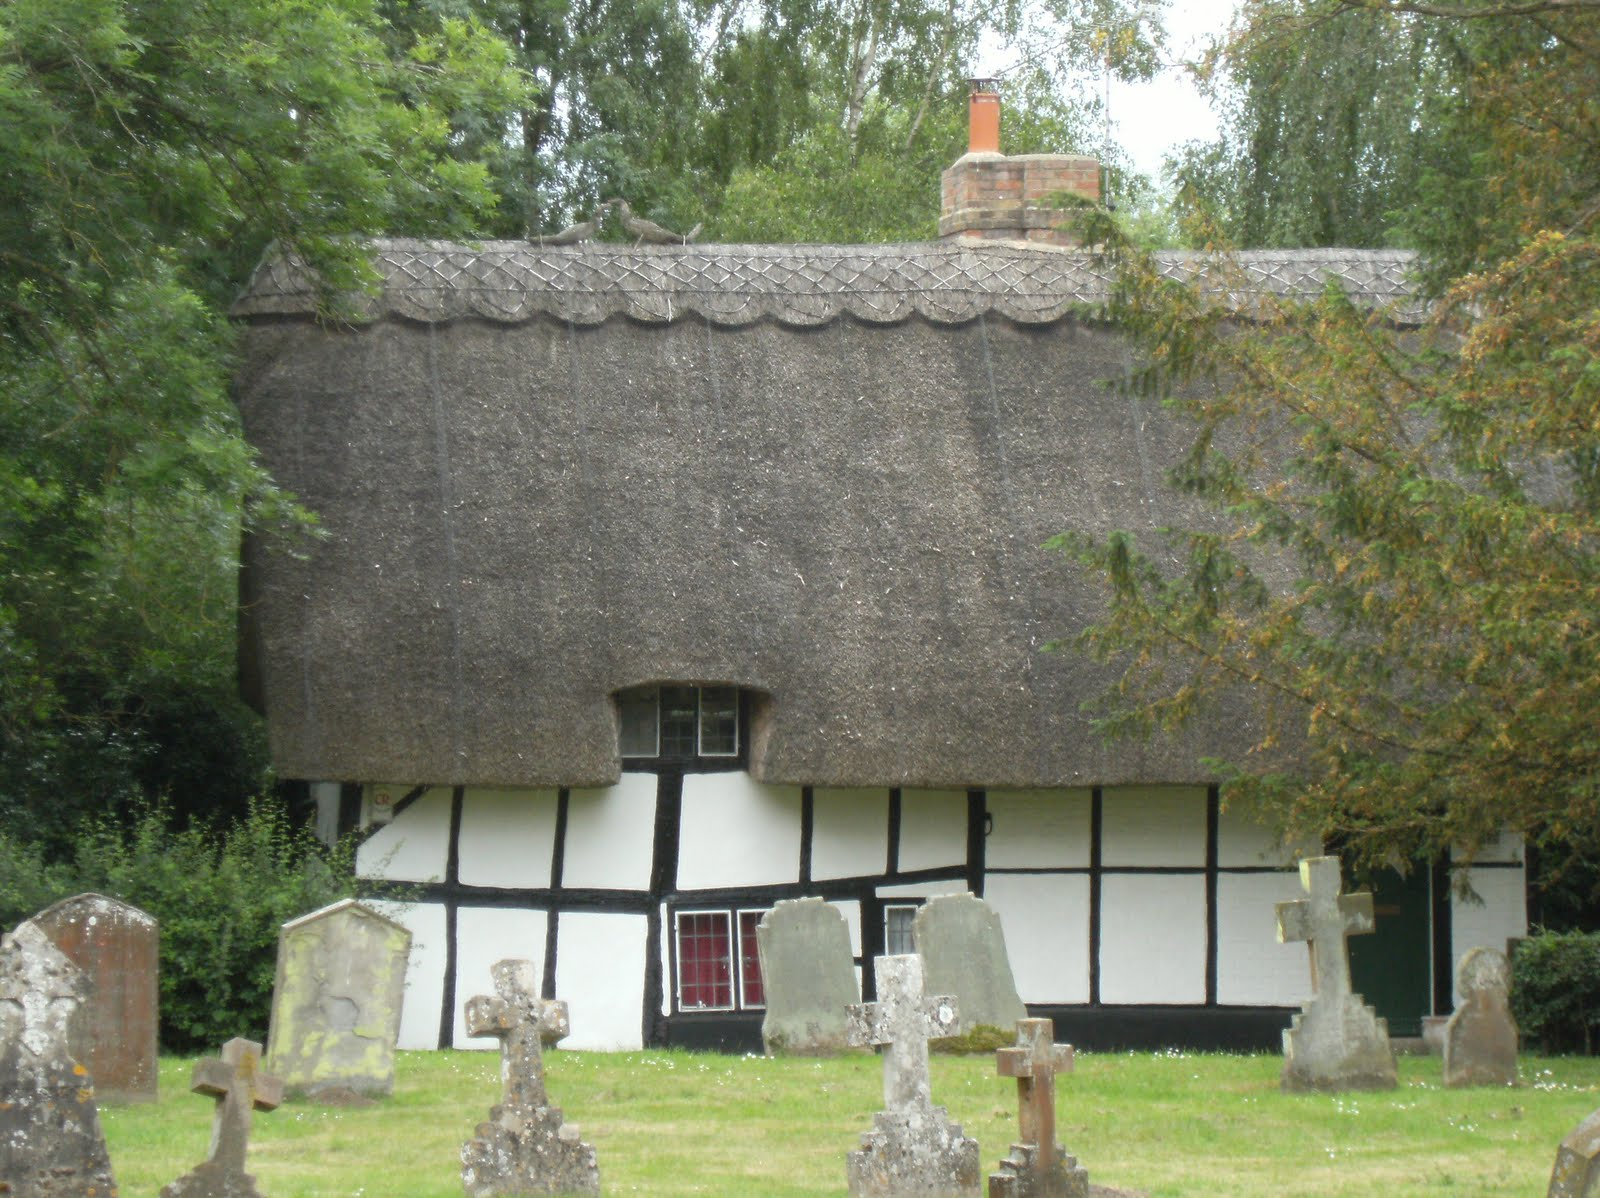 1006190014 Cottage in Abbey grounds